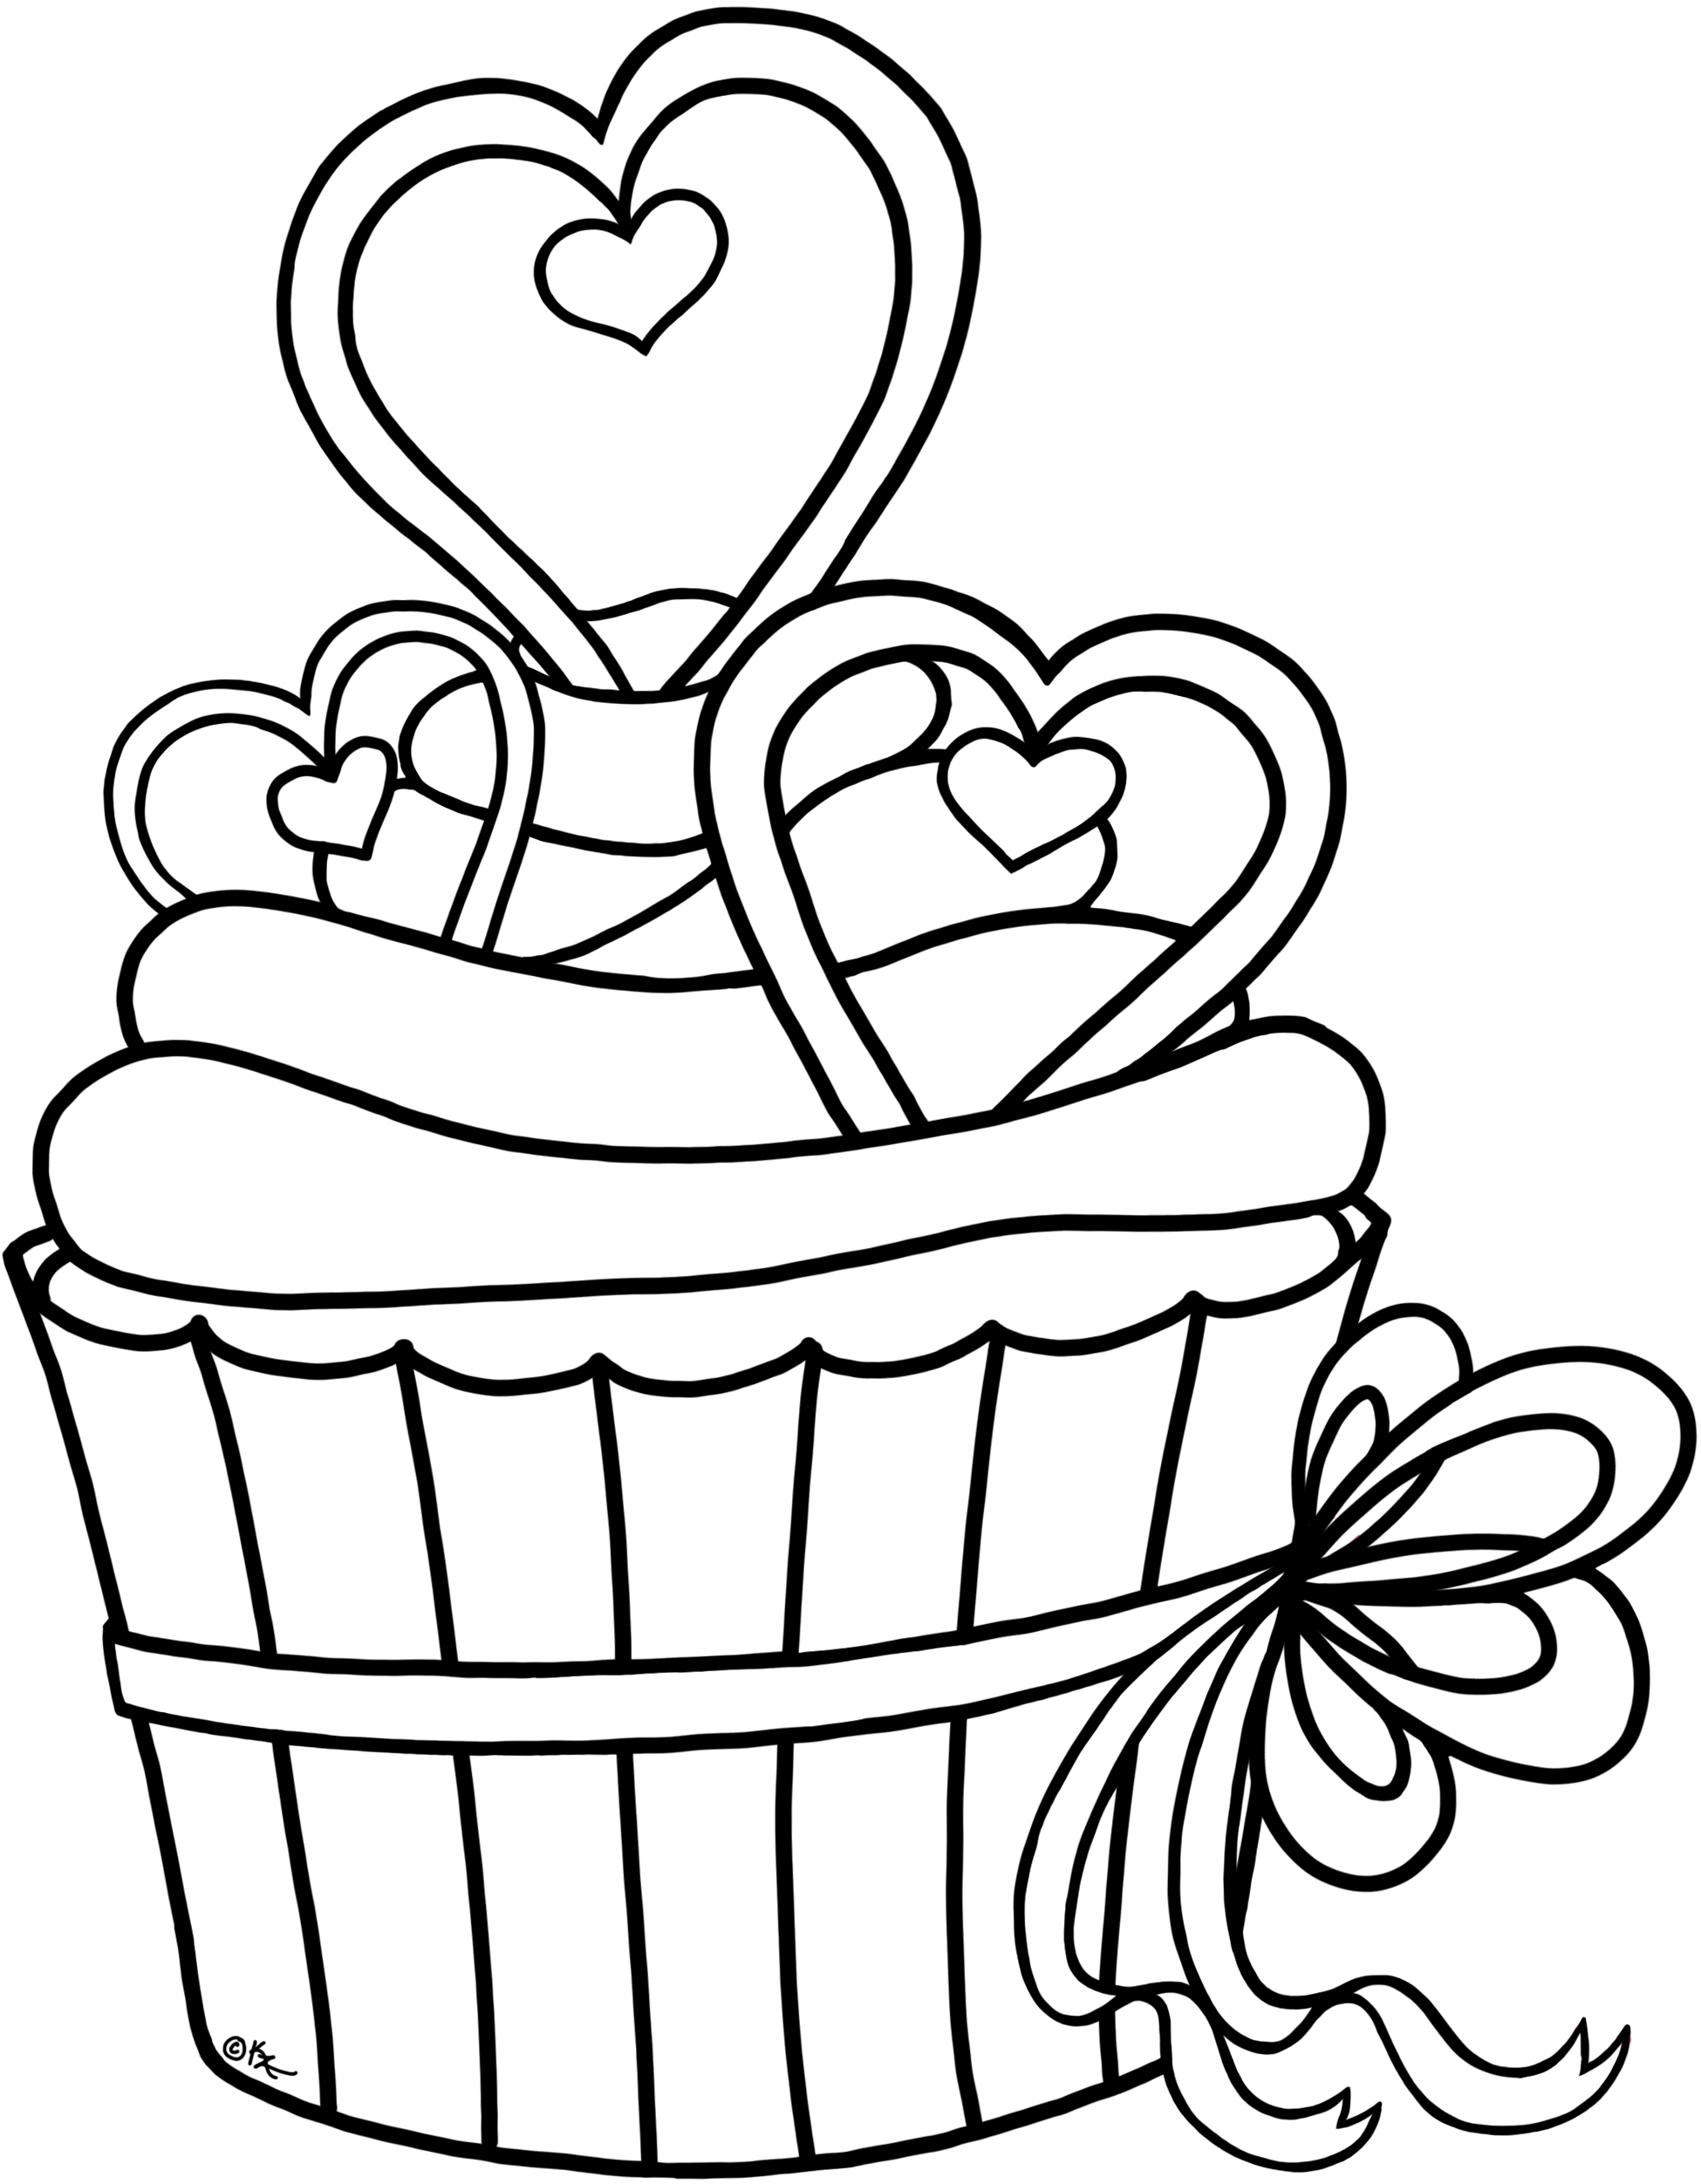 Transparent shuffleboard clipart - Royalty-free Images Cupcake Outline Clipart - Heart Cupcake Coloring Pages